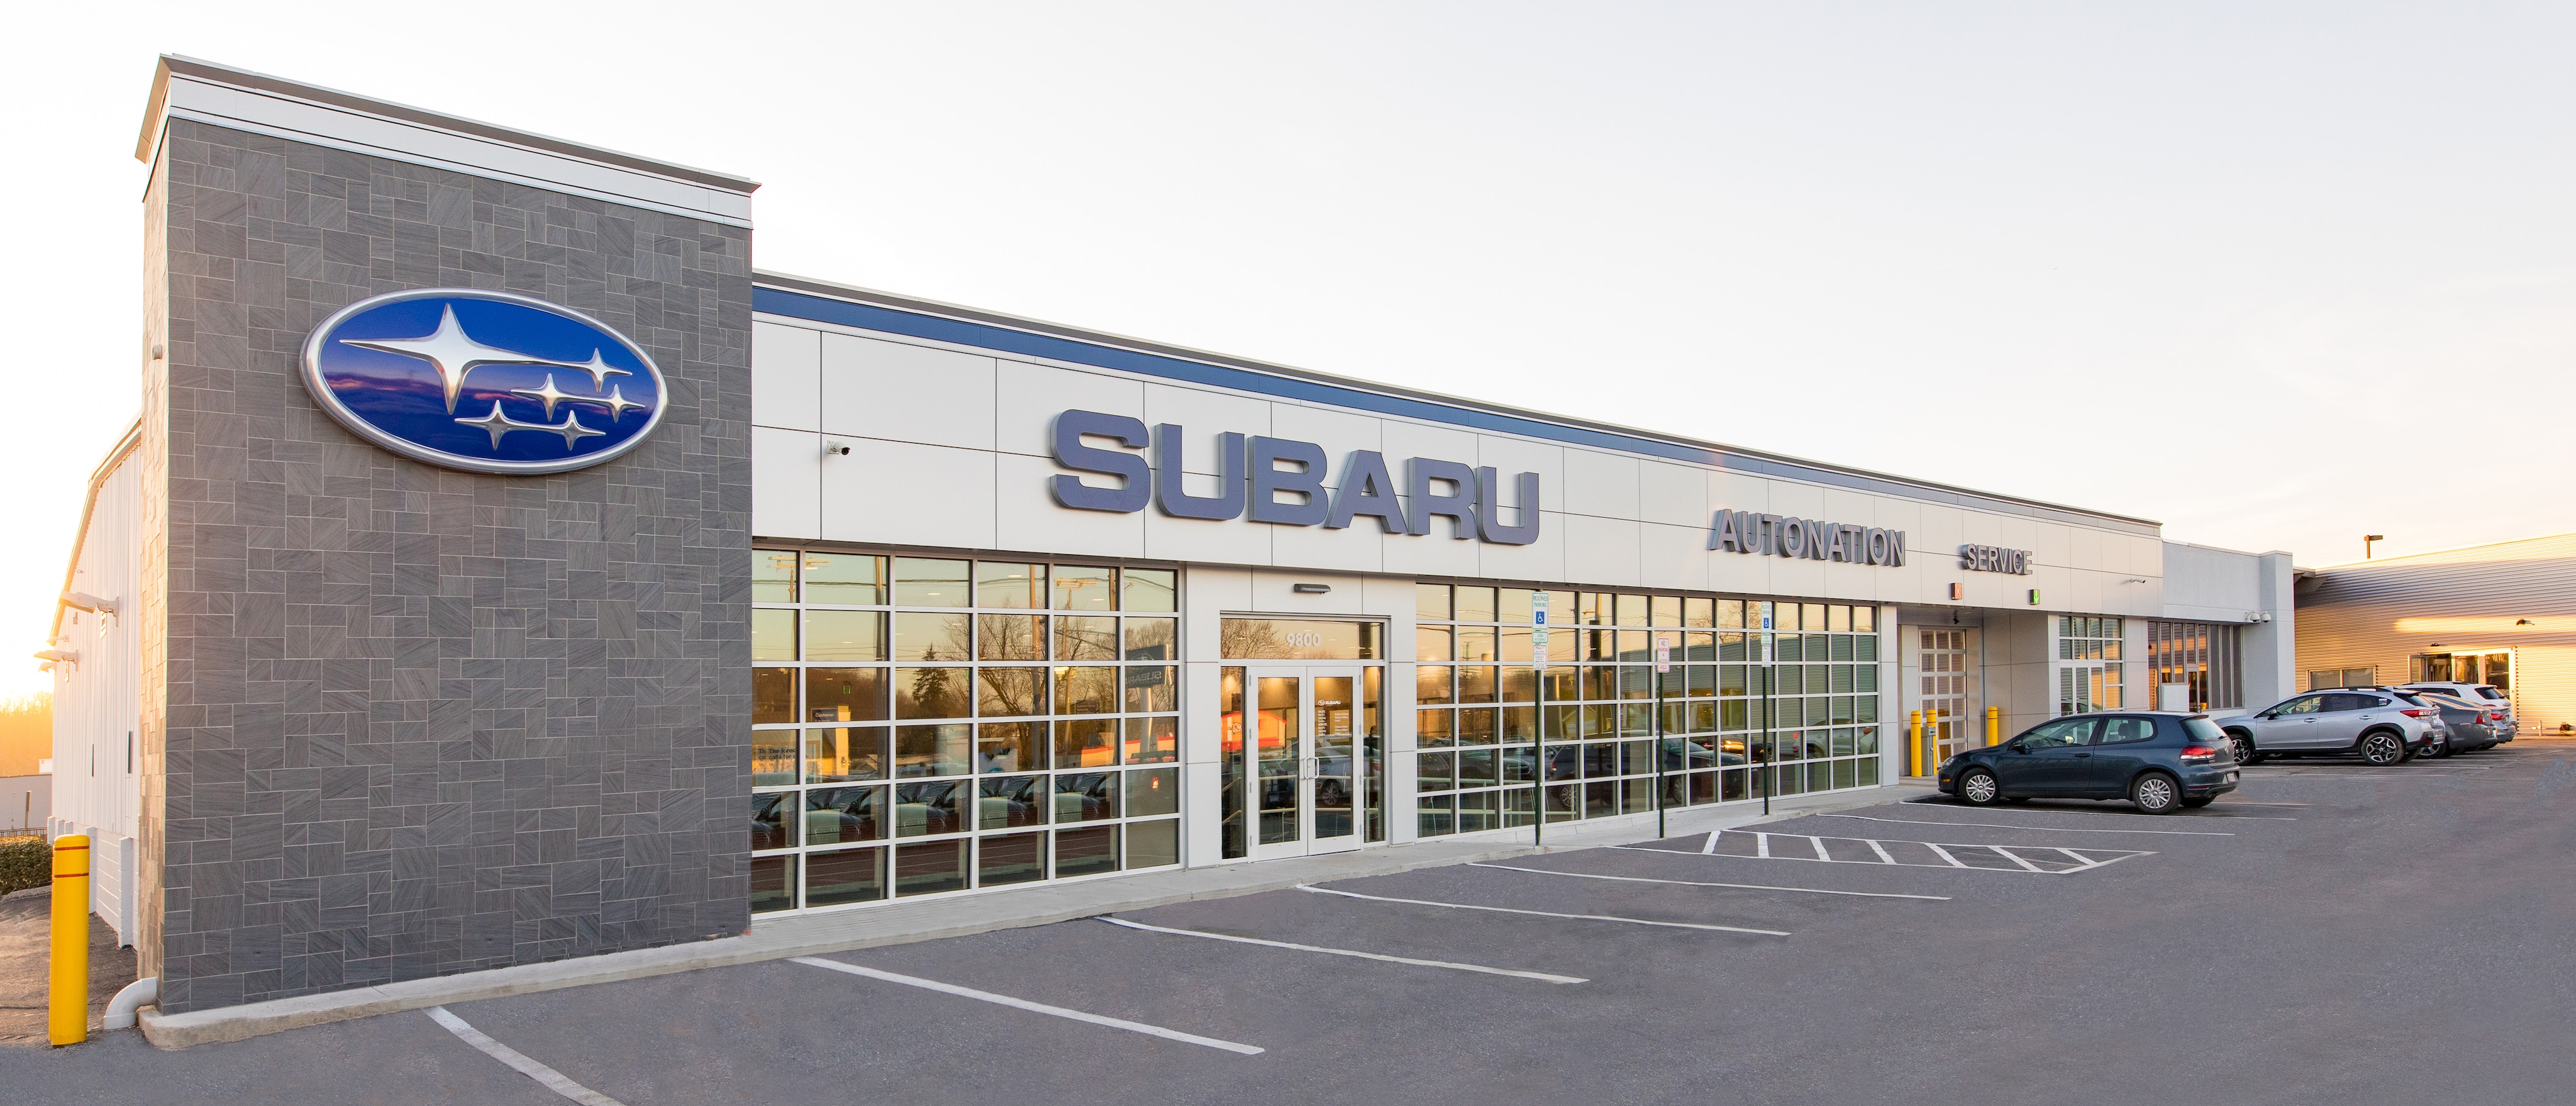 Subaru Dealer In Hunt Valley >> Subaru Dealership Near Me In Cockeysville Md Autonation Subaru